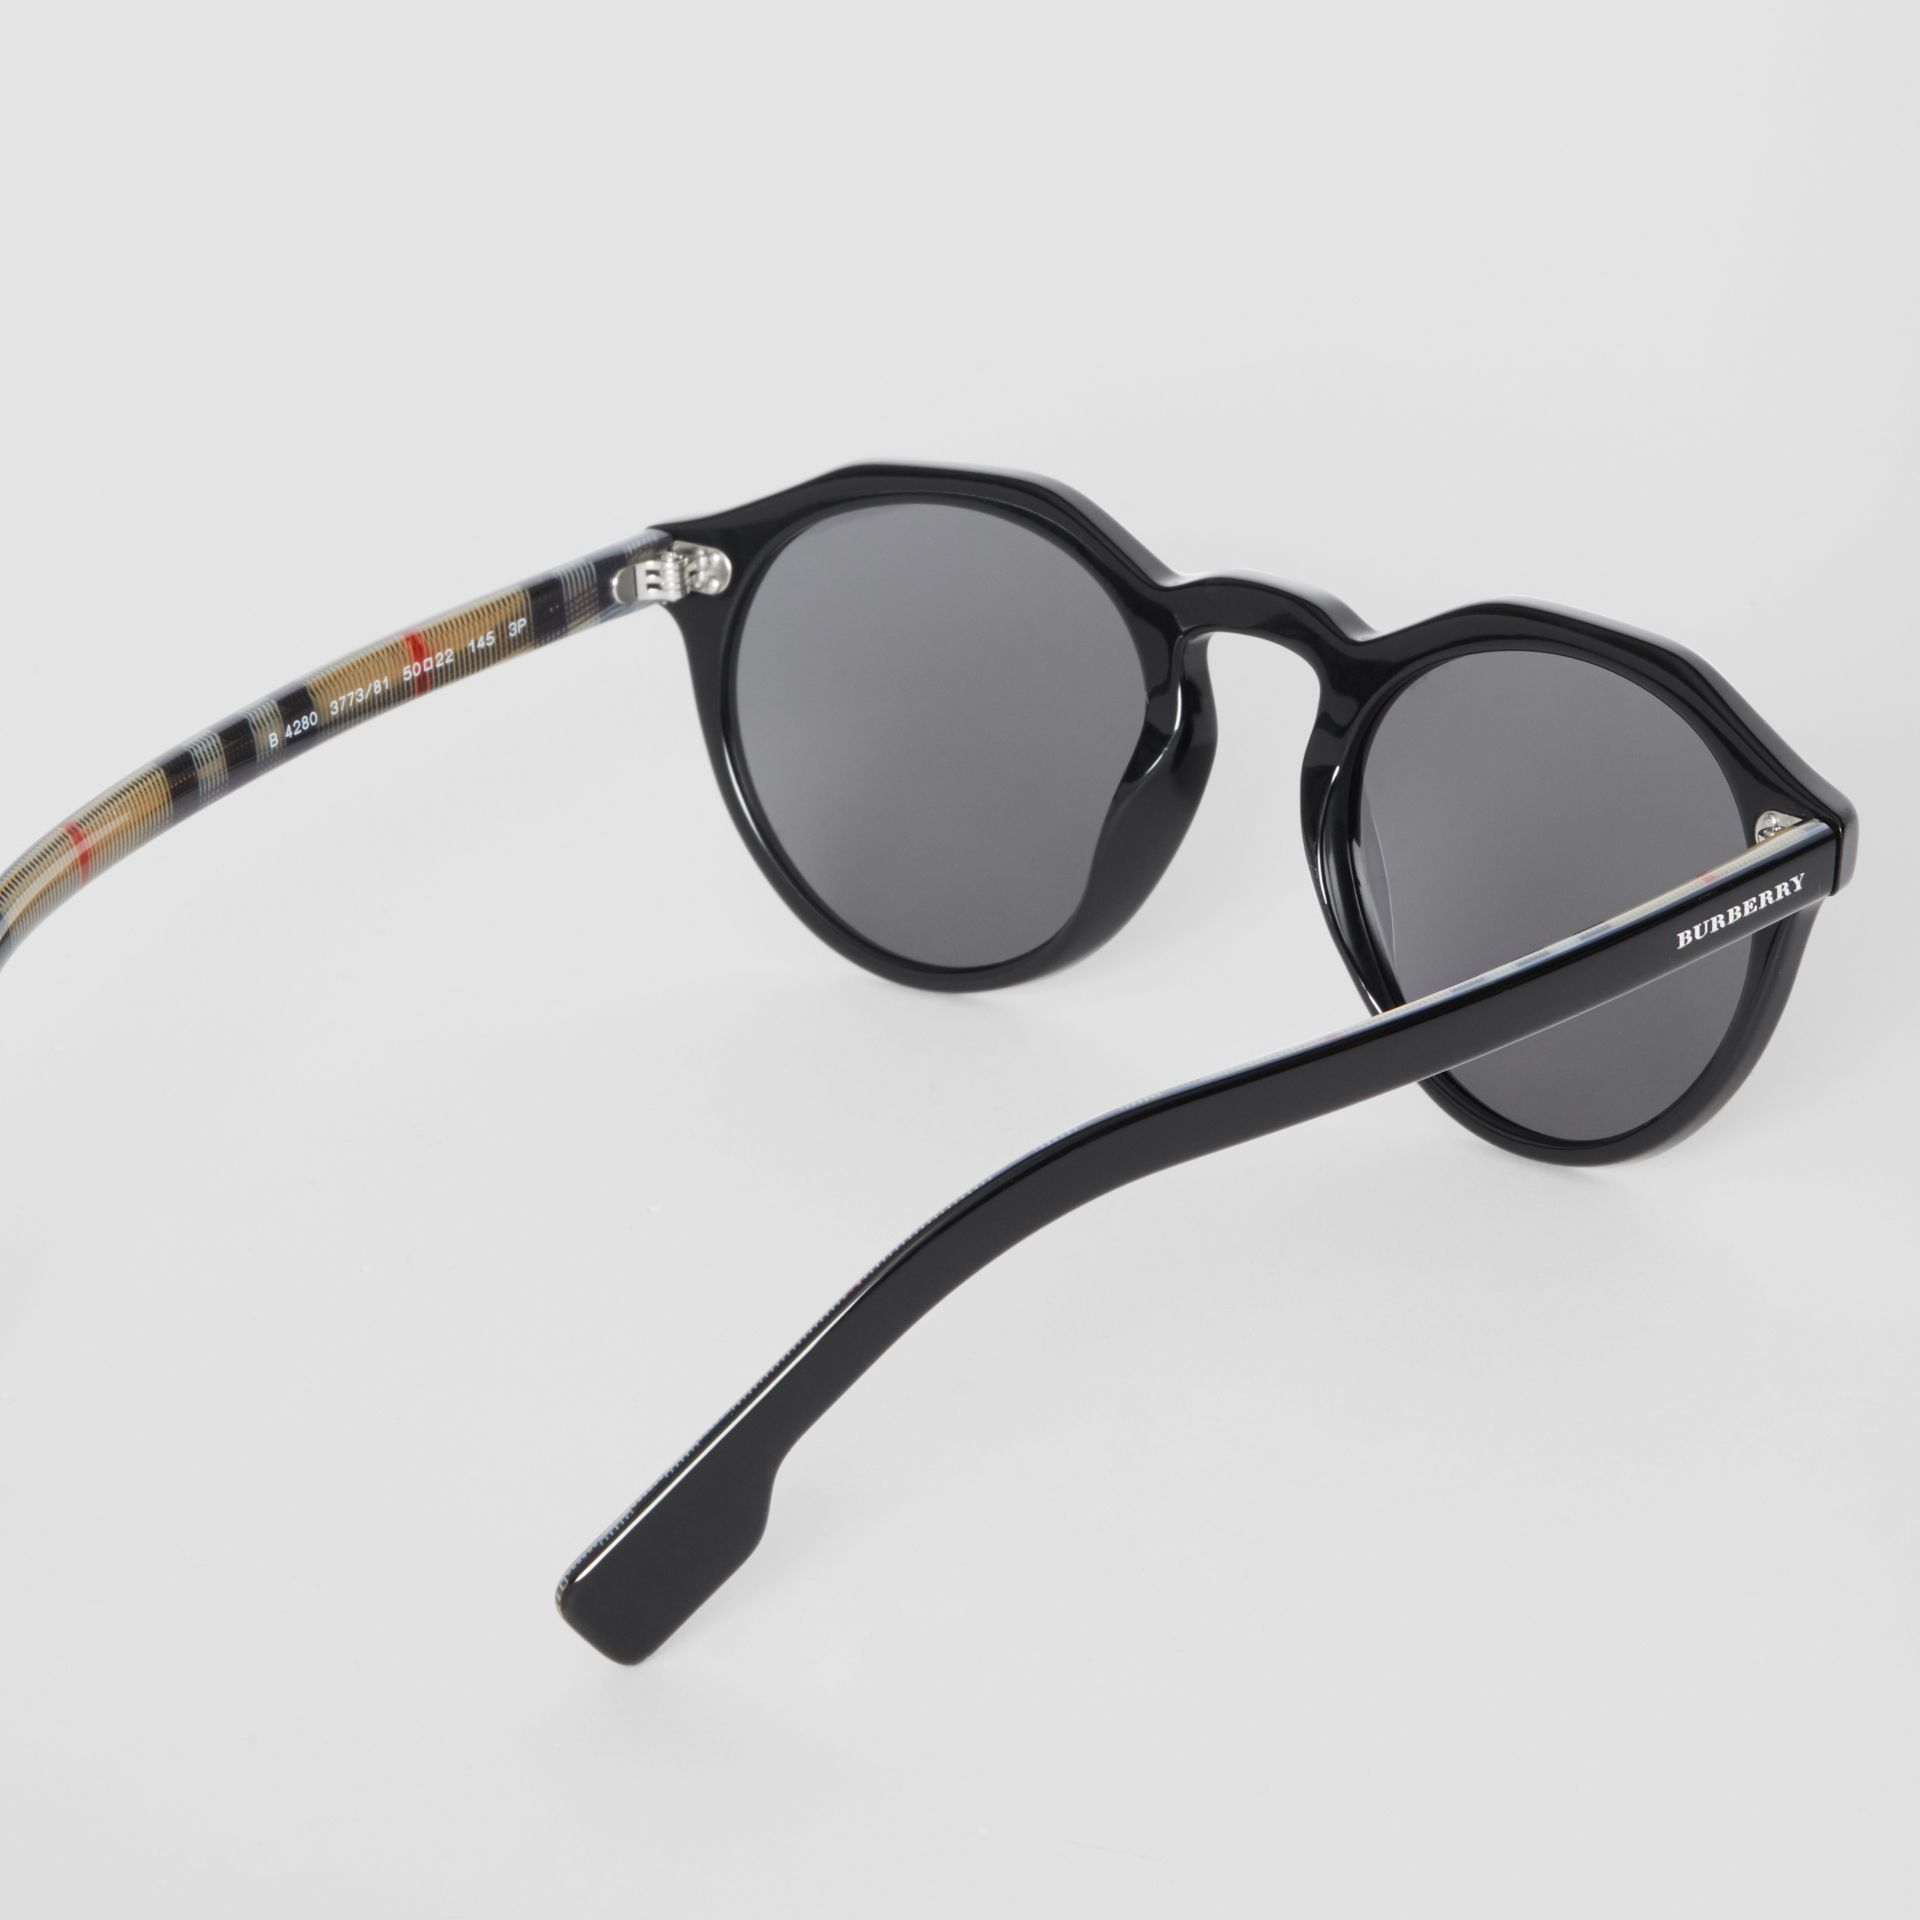 Vintage Check Detail Round Frame Sunglasses in Black - Men | Burberry - gallery image 4